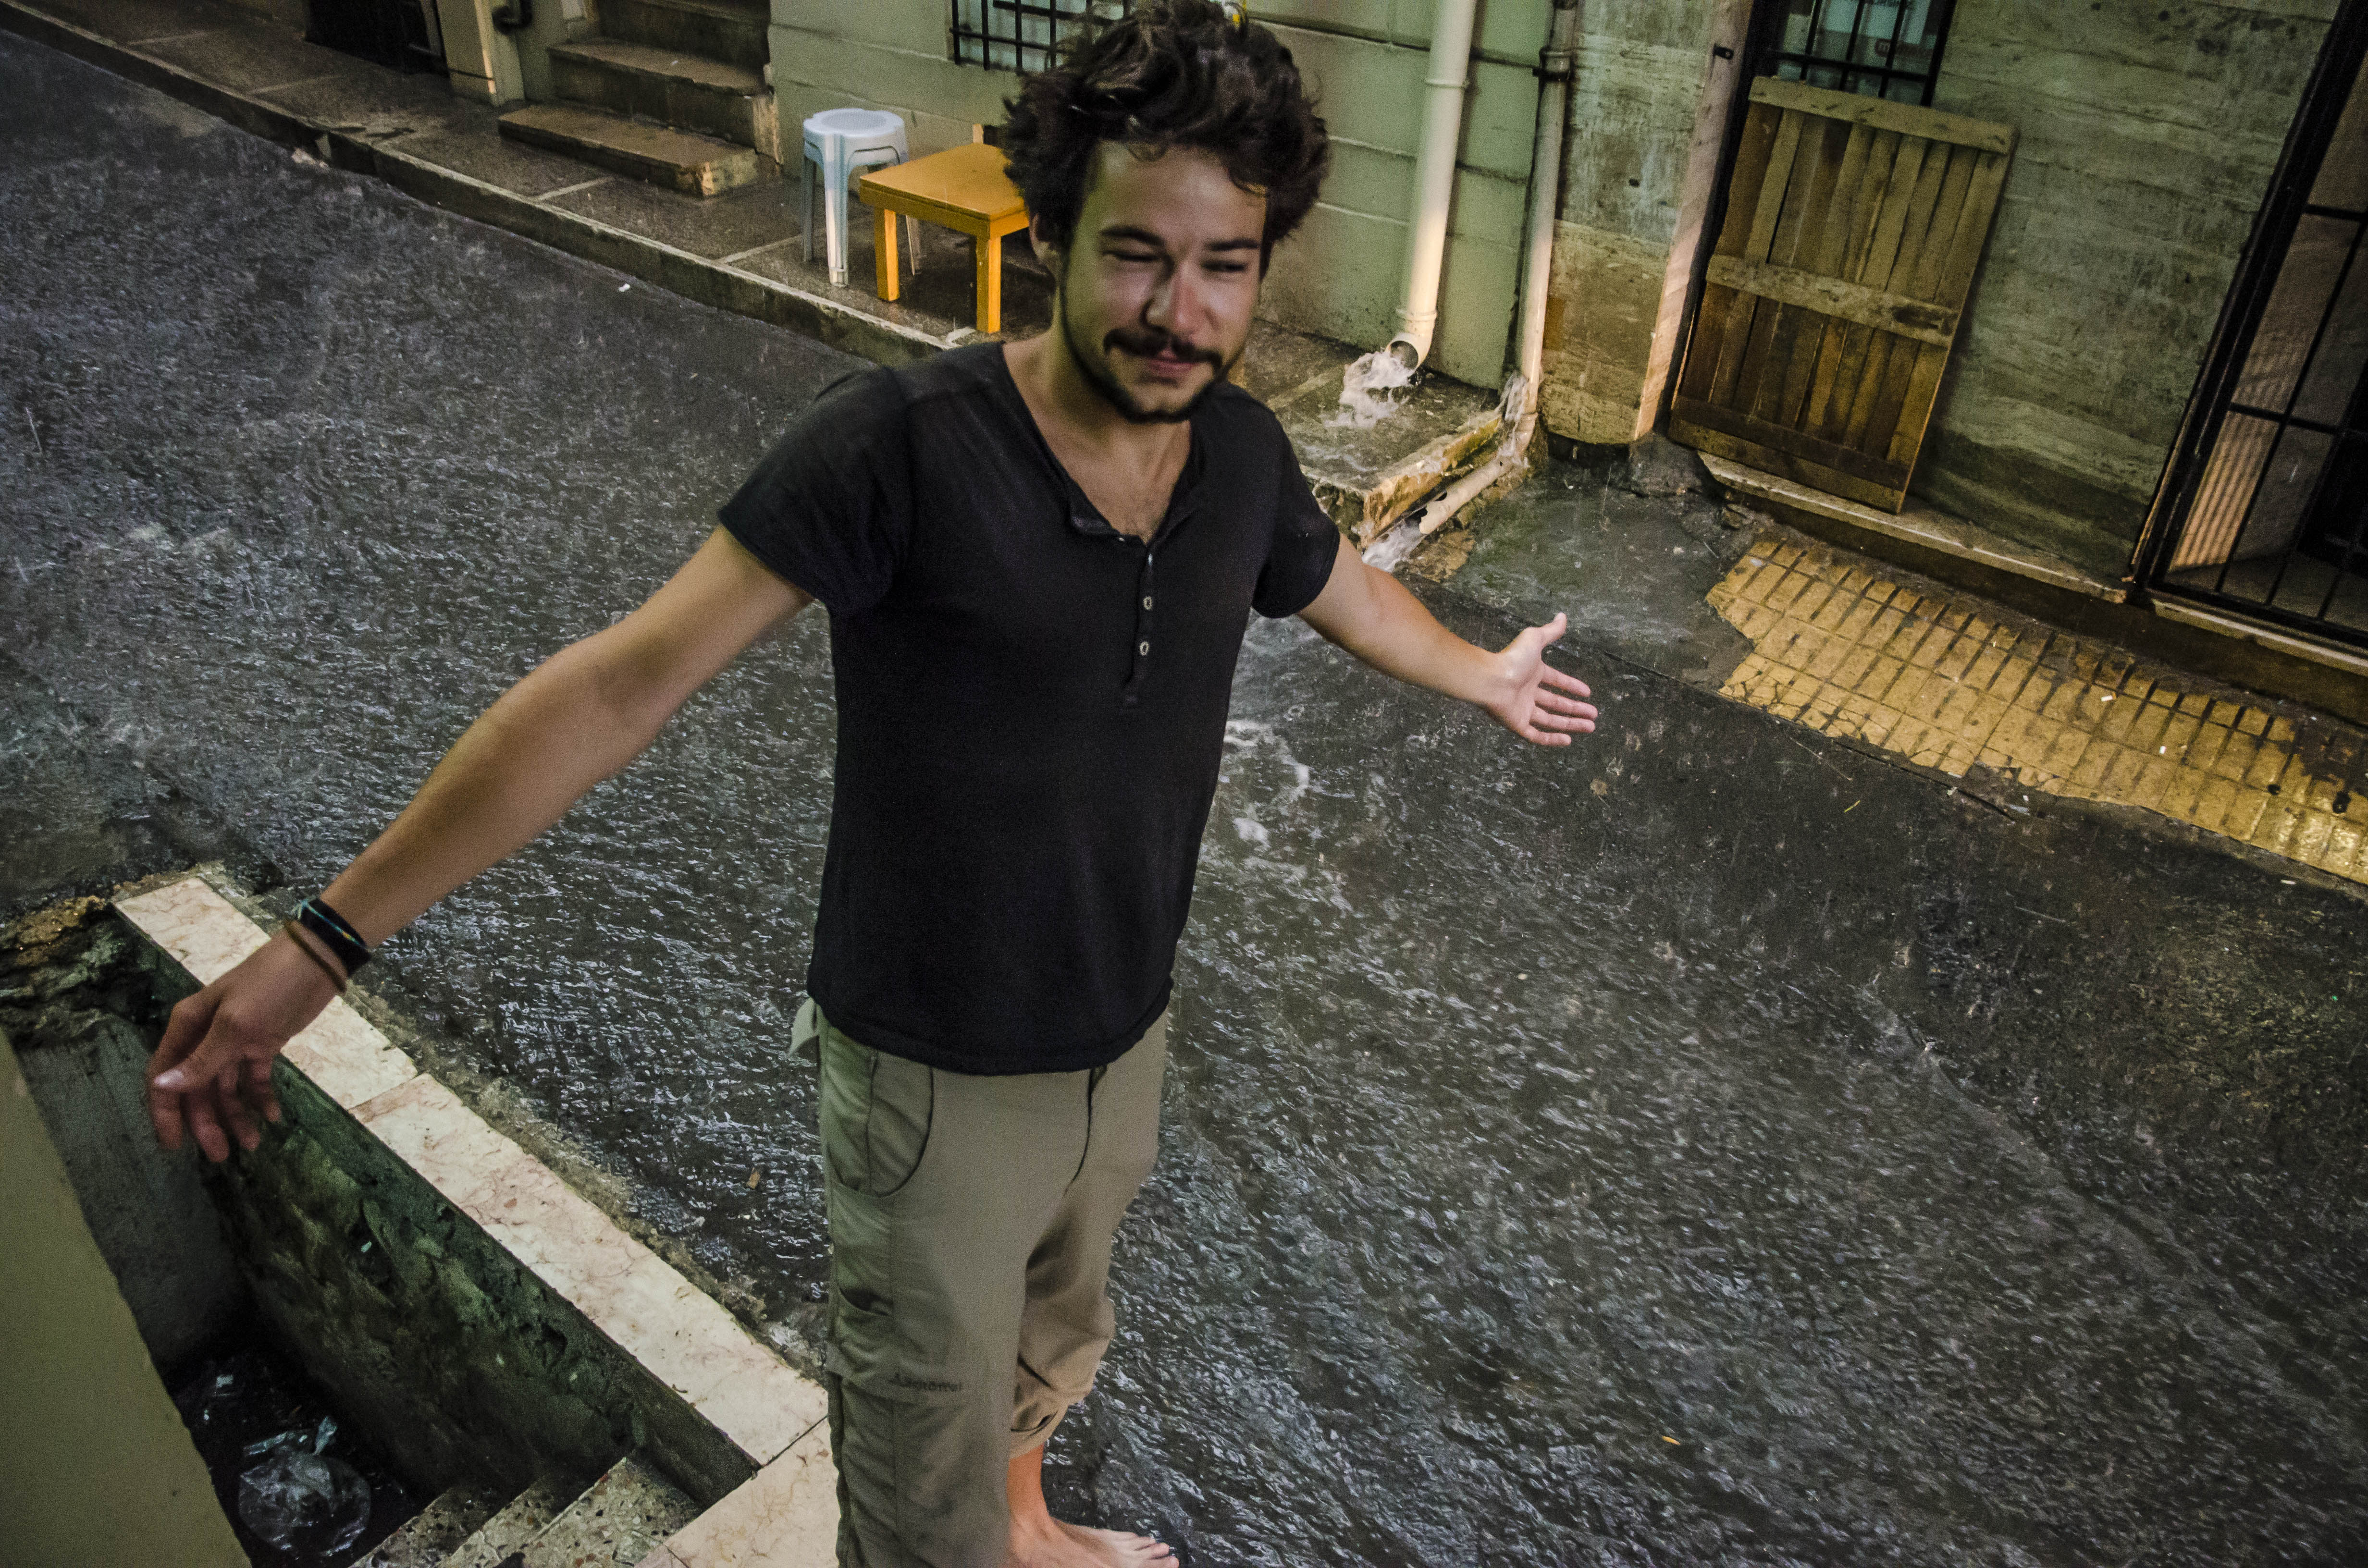 Galata West hostel, and the rain came